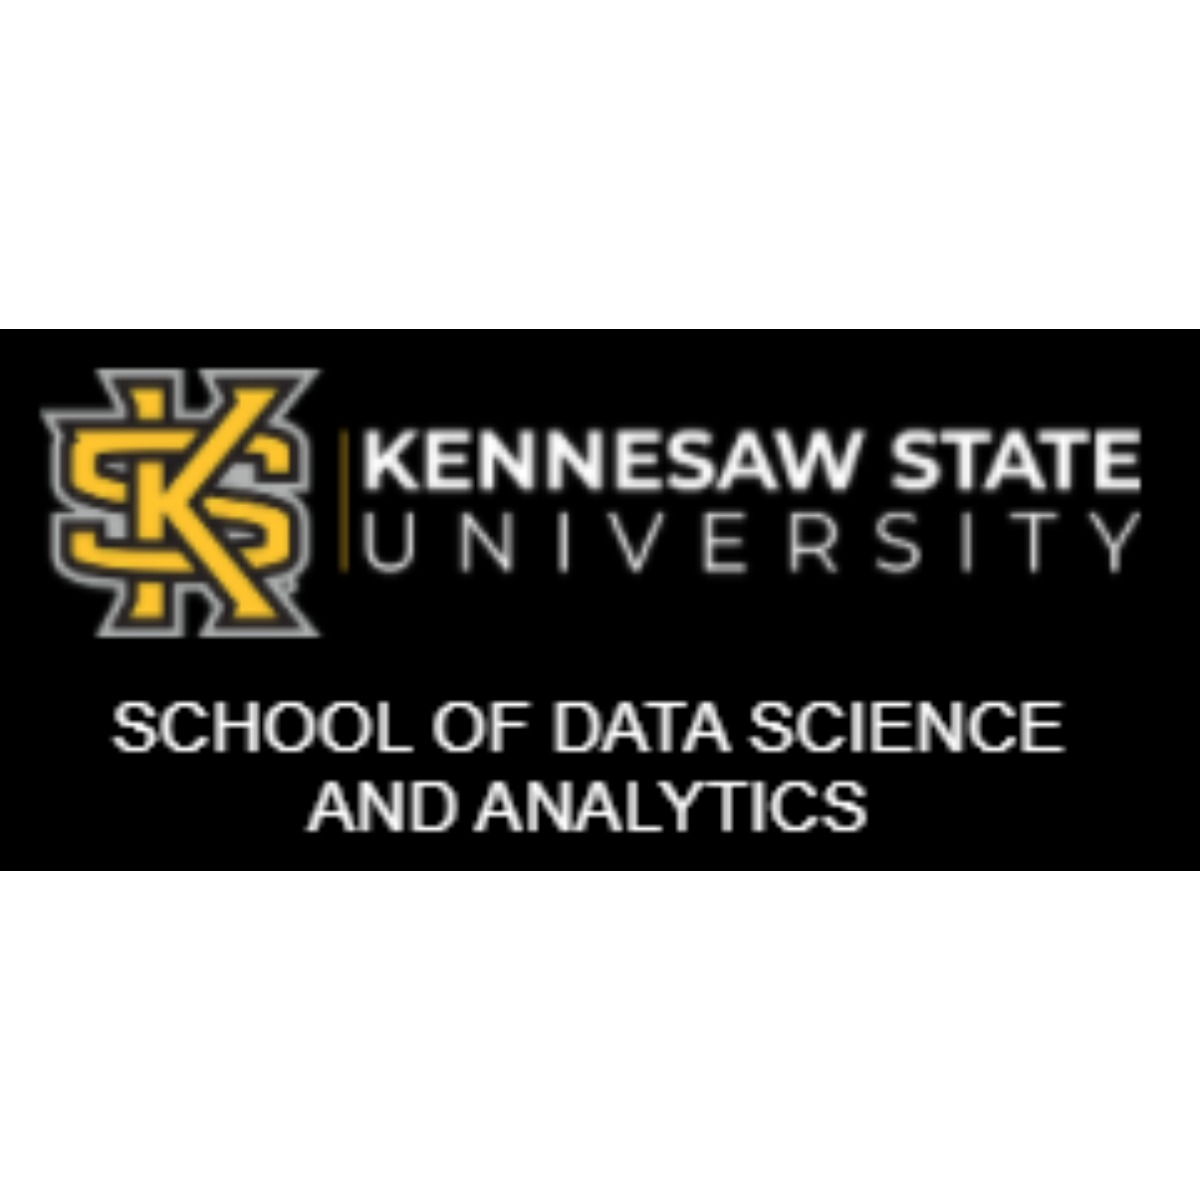 Kennesaw State University School of Data Science